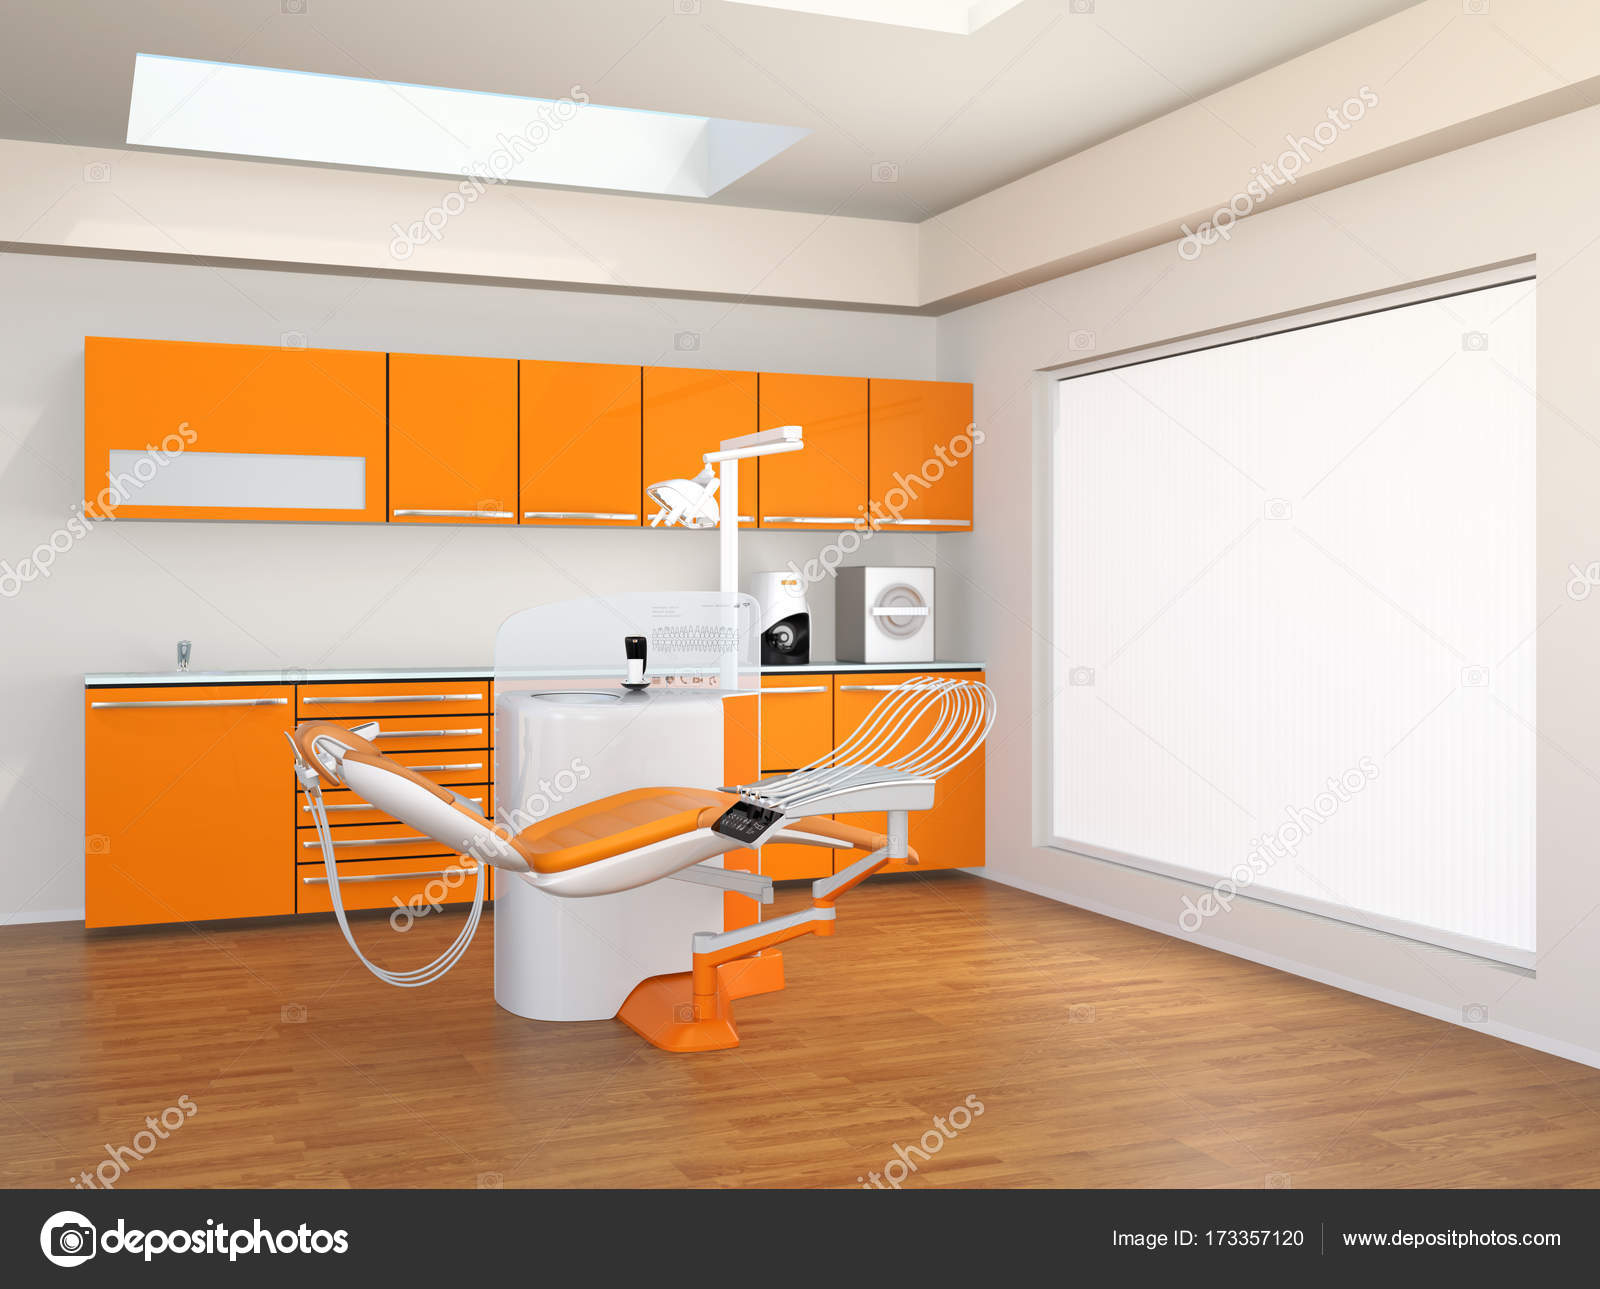 Dental Clinic Interior With Yellow Cabinet And Patient Chair Stock